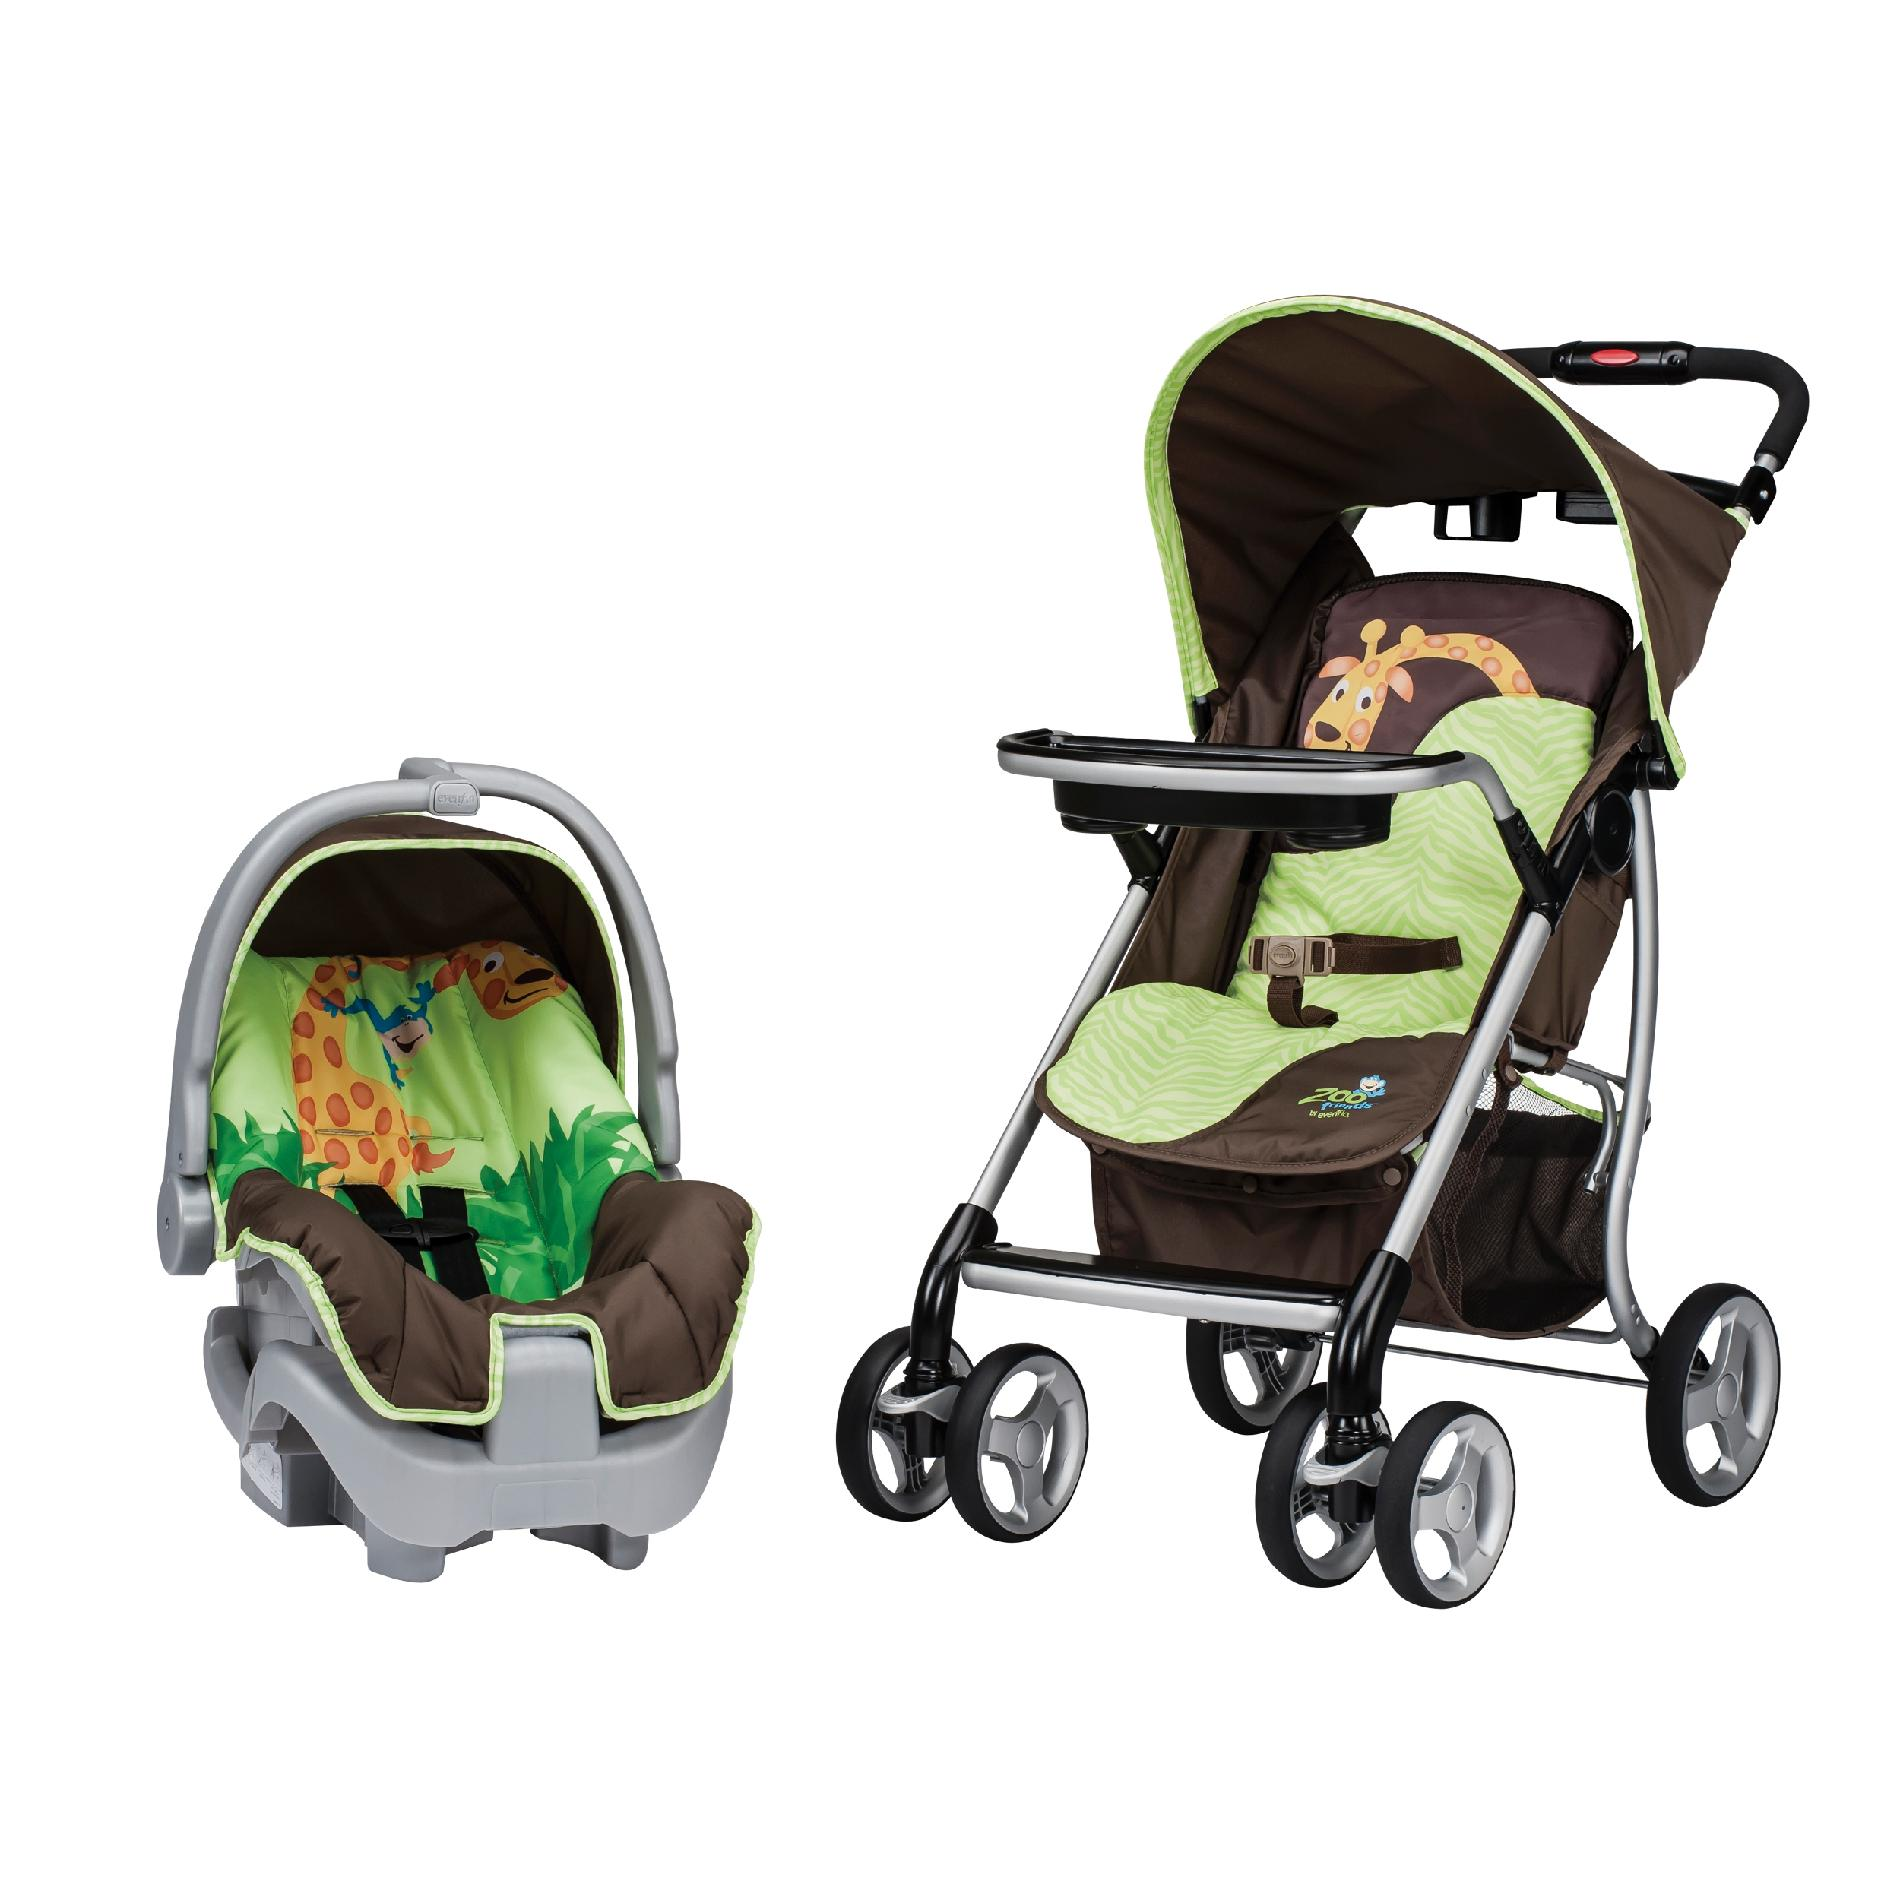 Evenflo Stroller  Infant Car Seat Travel System  Zoo